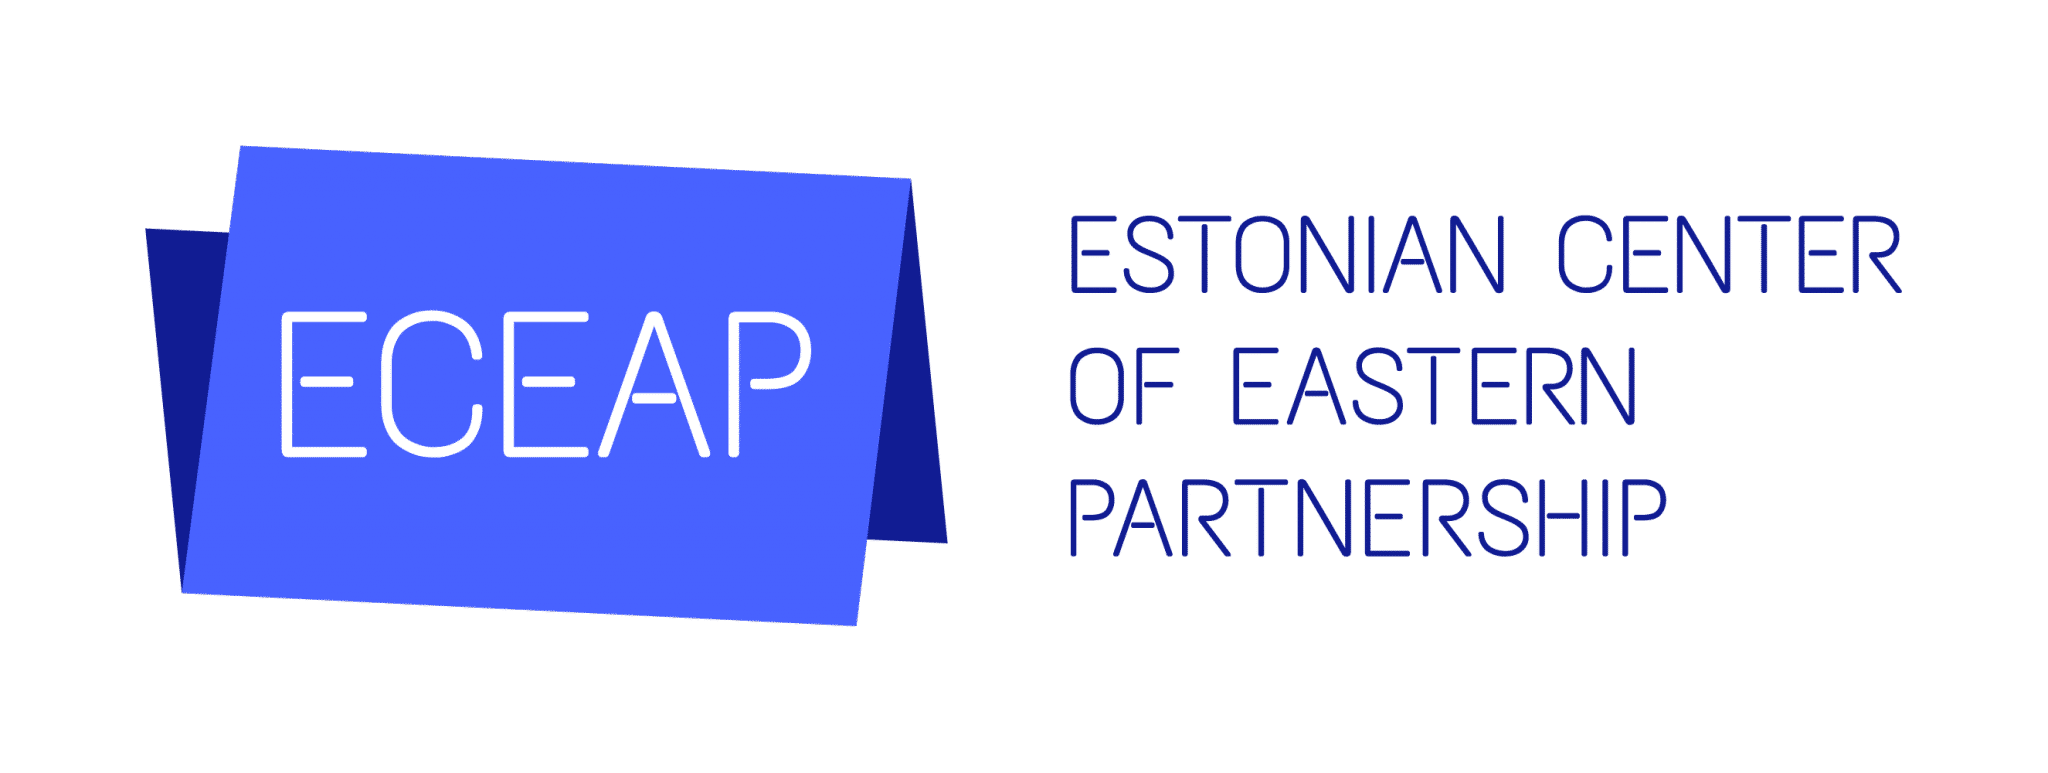 Estonian Center of Eastern Partnership